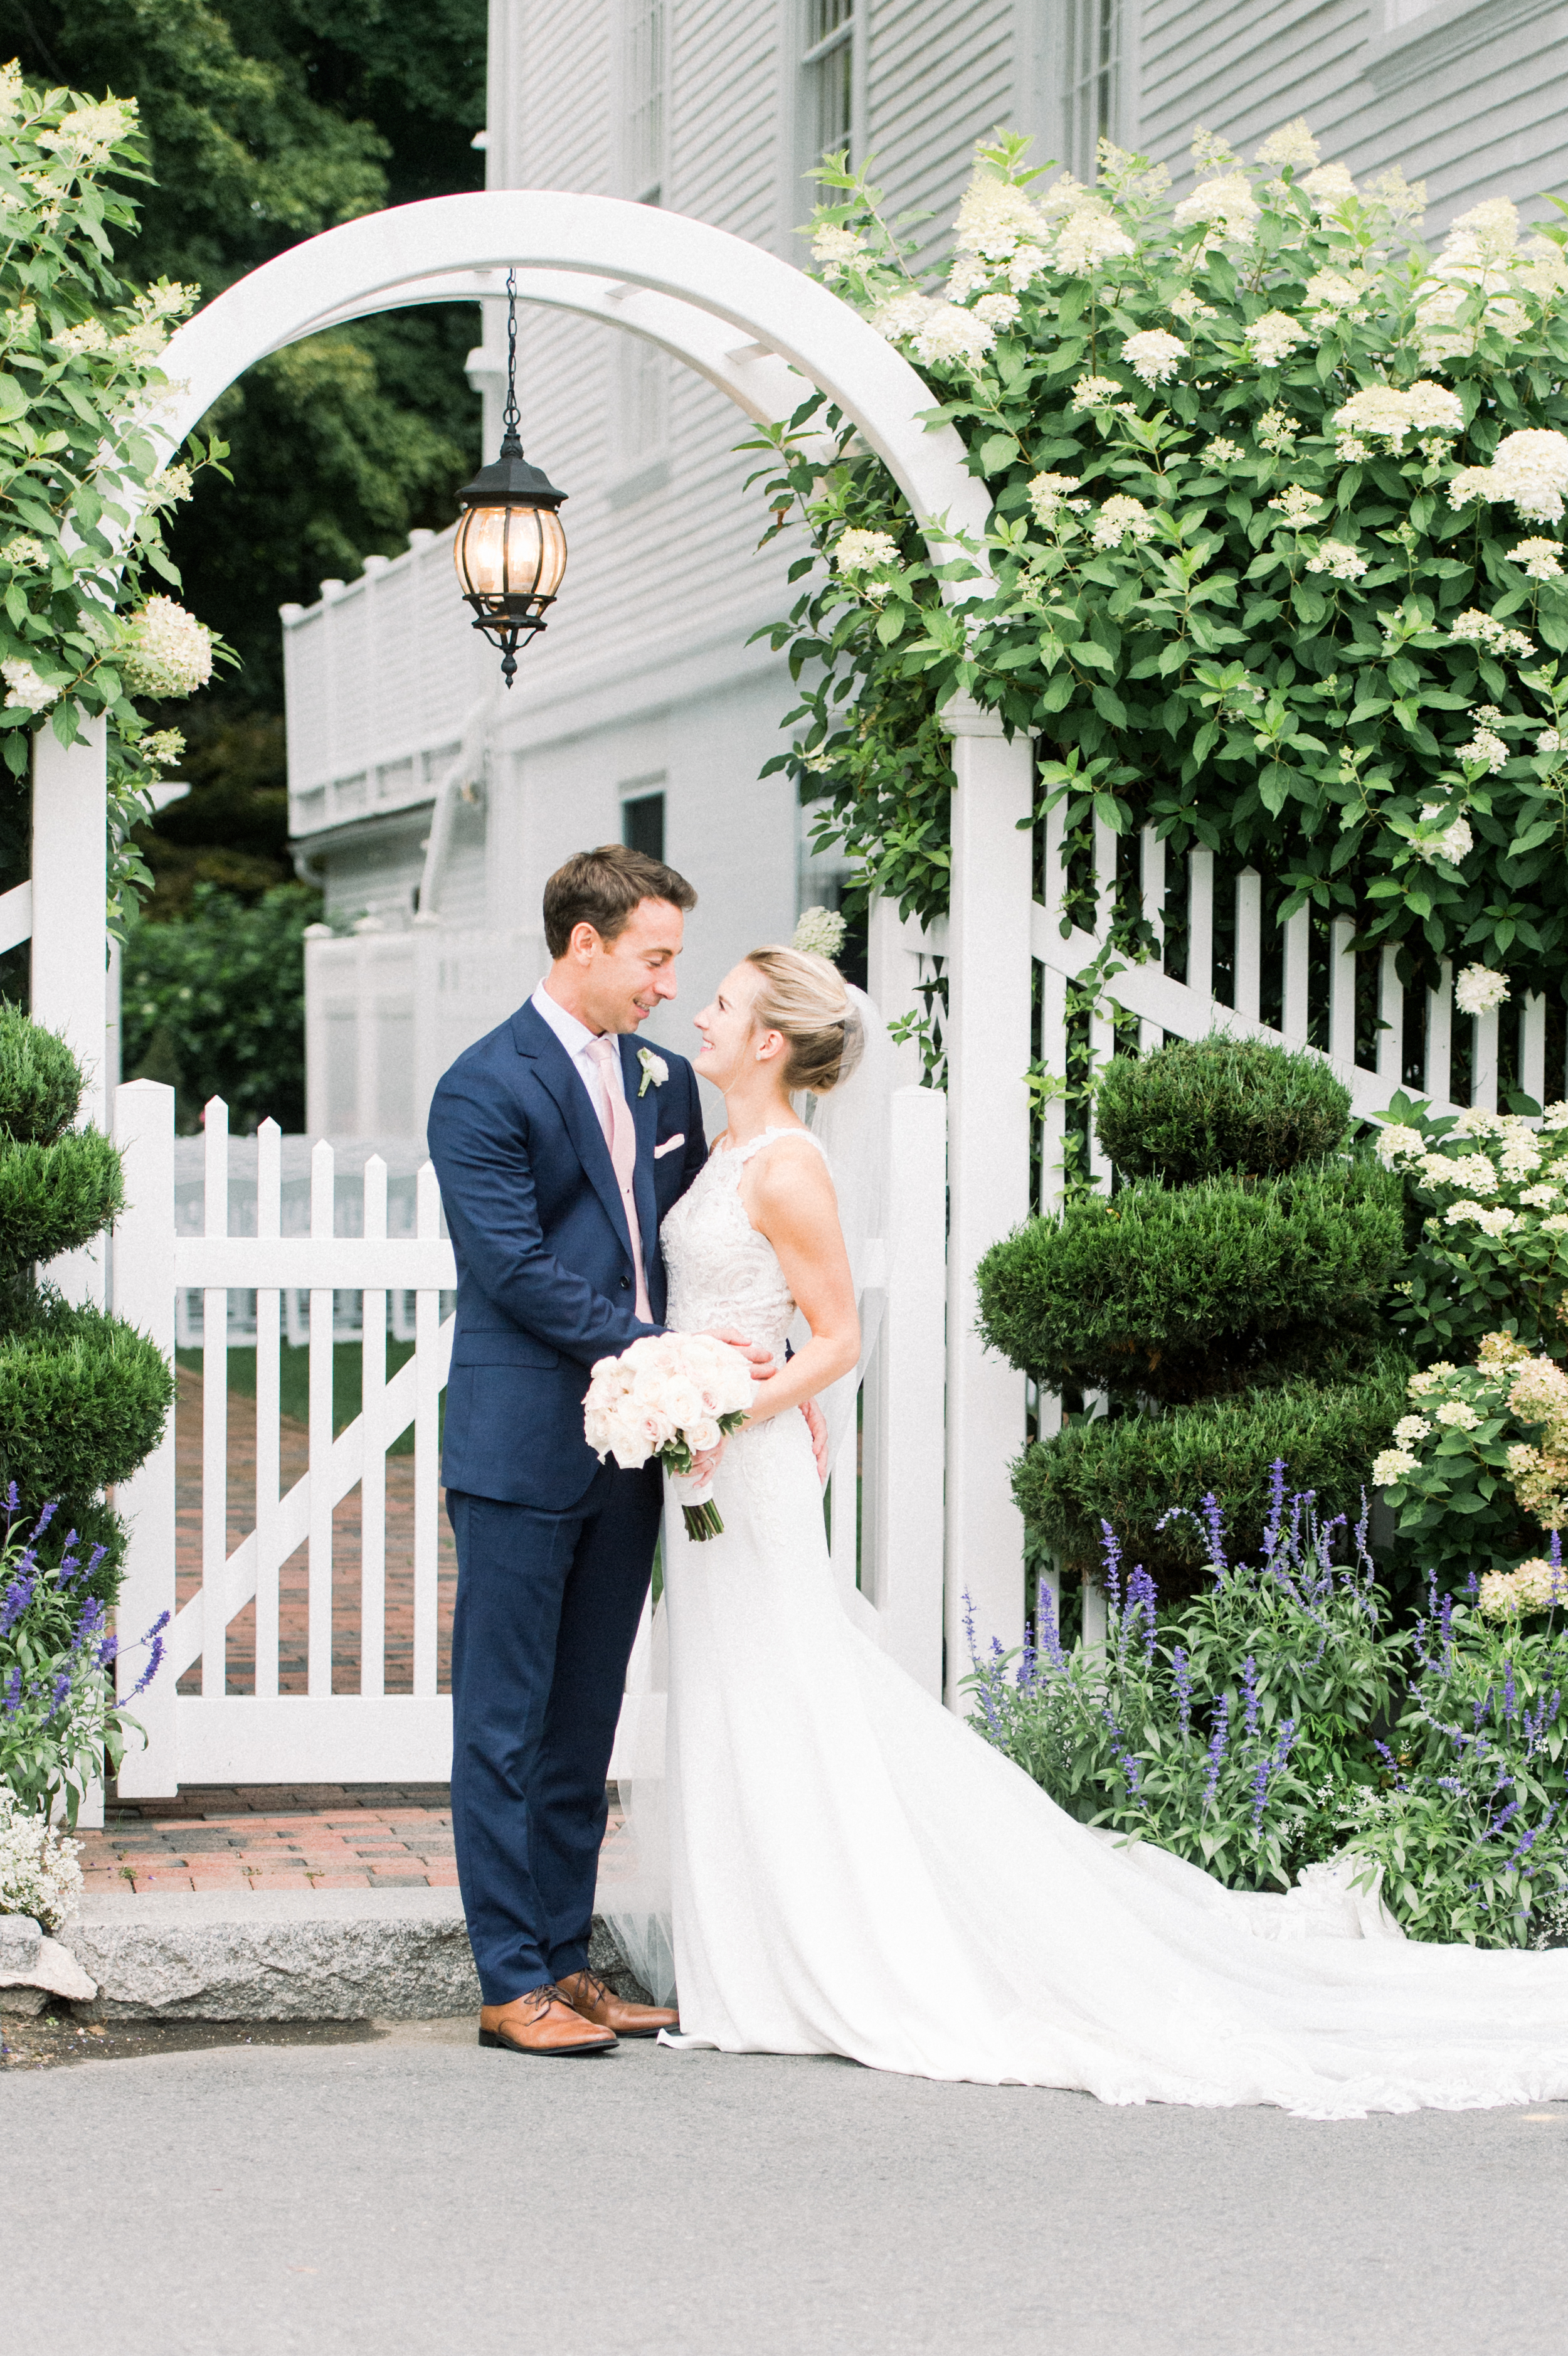 The Commons 1854 Topsfield MA wedding | Massachusetts wedding venue | Massachusetts wedding photography | couples portraits  bride and groom